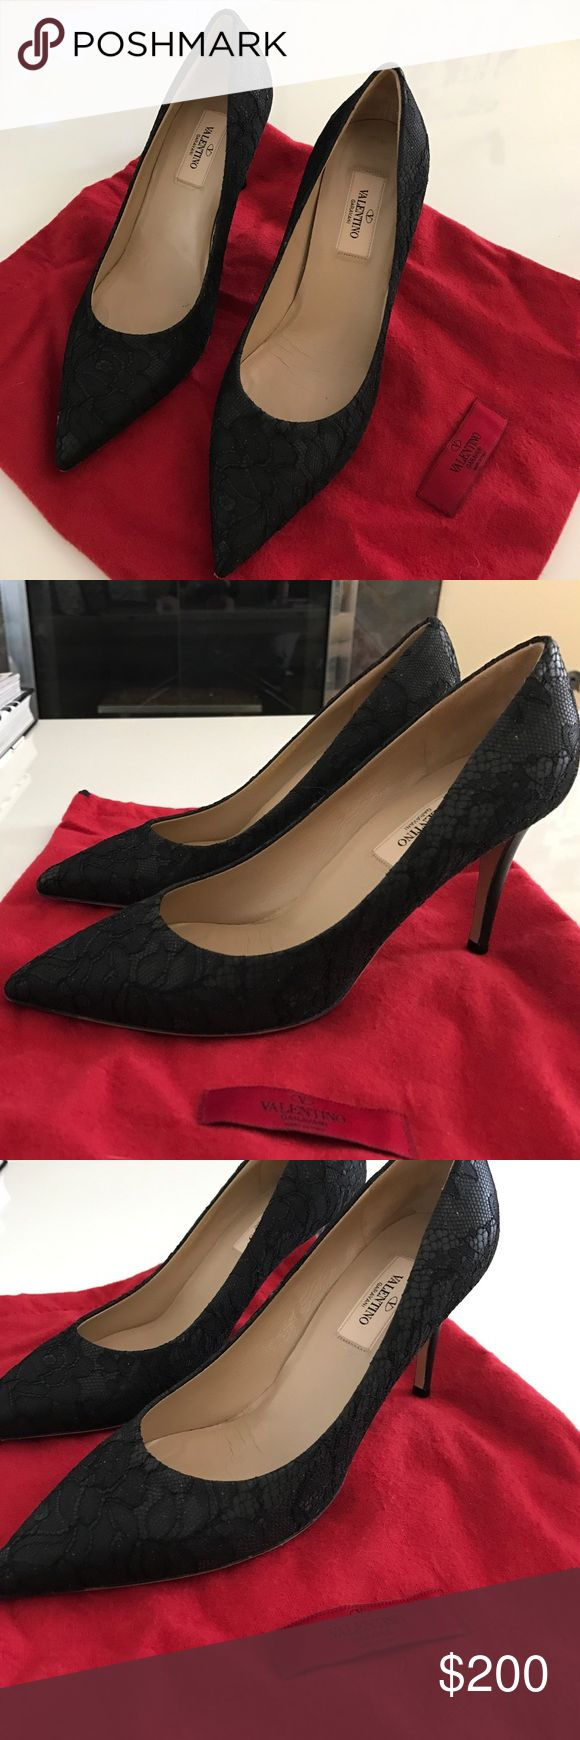 Valentino - black lace stilettos Only worn once!💕 / 3.5 in heel / lace overlay over leather / pointed toe / comes with original box / Valentino Shoes Heels